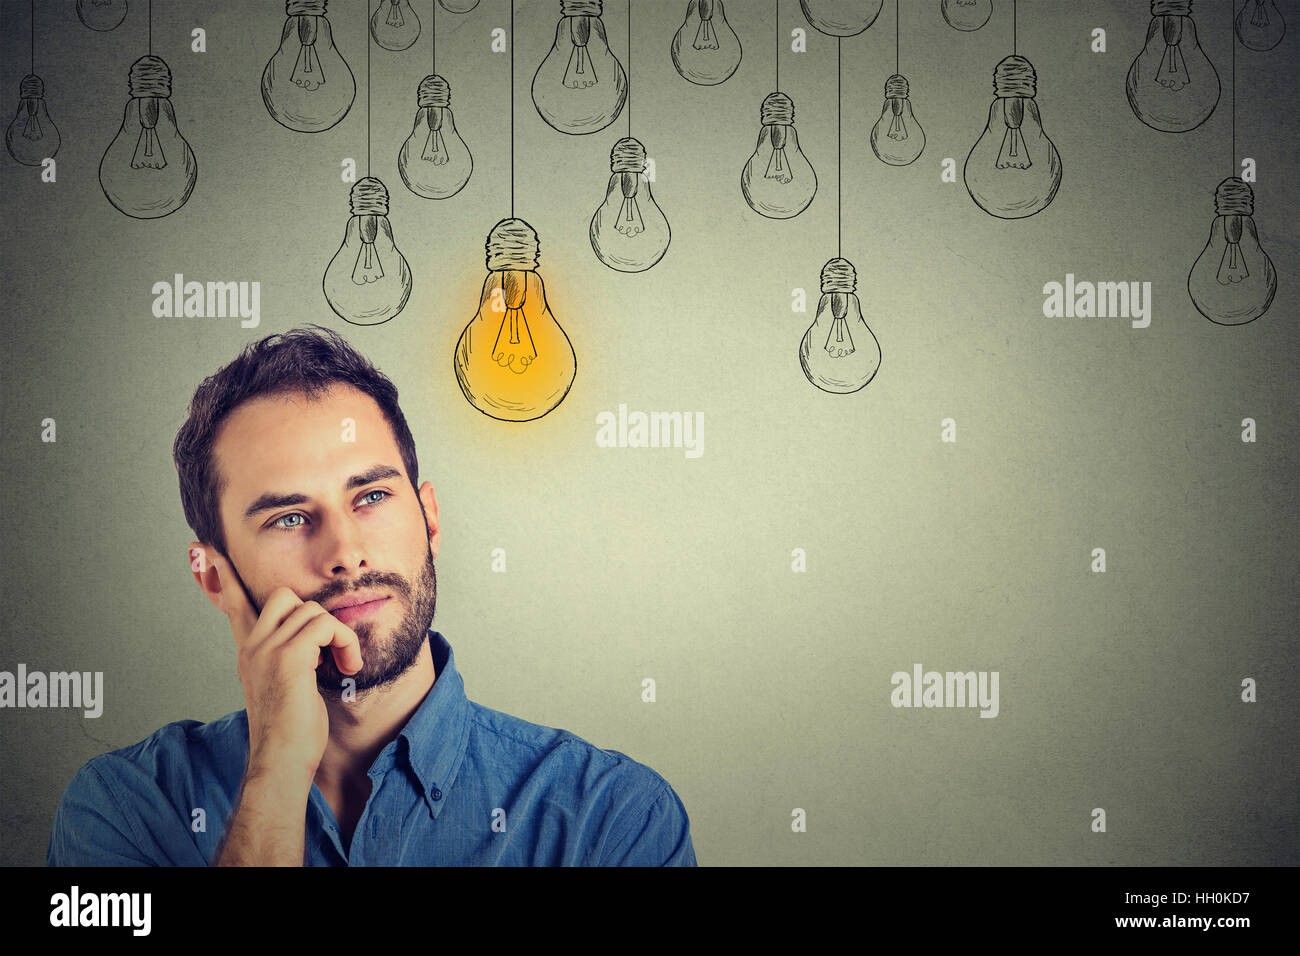 Portrait thinking handsome man looking up with idea light bulb above head isolated on gray wall background - Stock Image